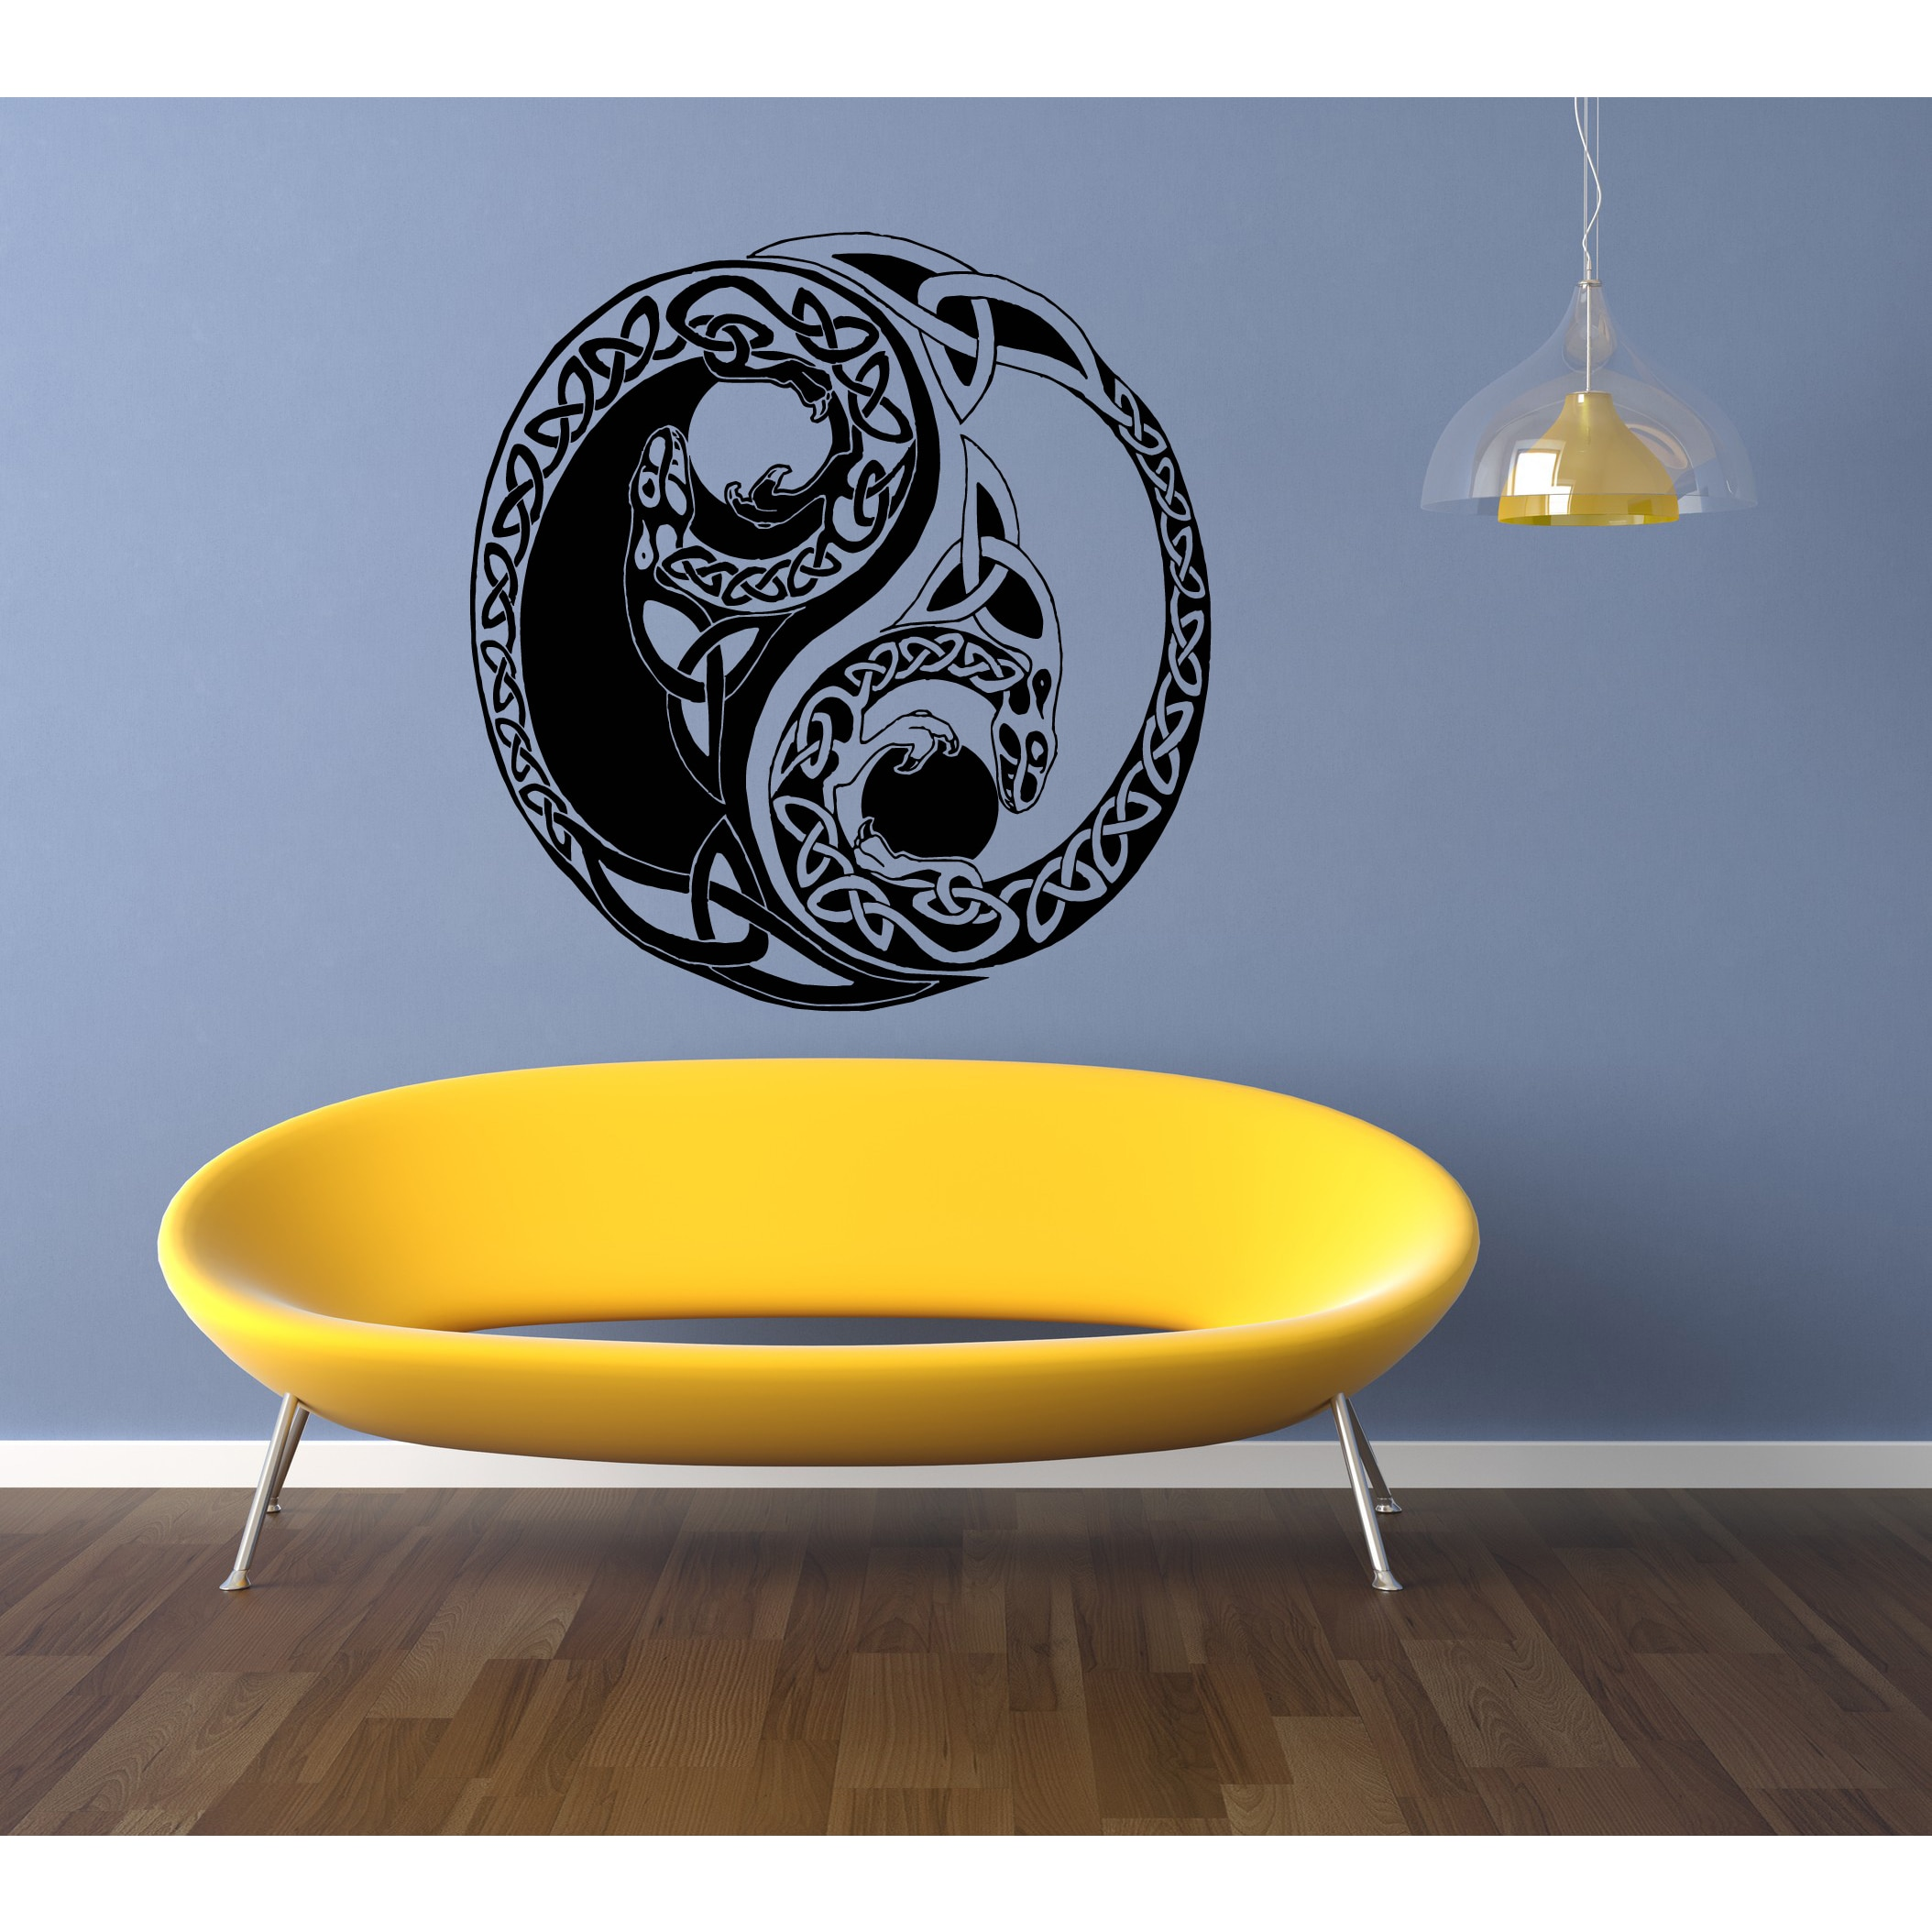 Shop Celtic knot stylized graphical representations The Dragon Wall ...